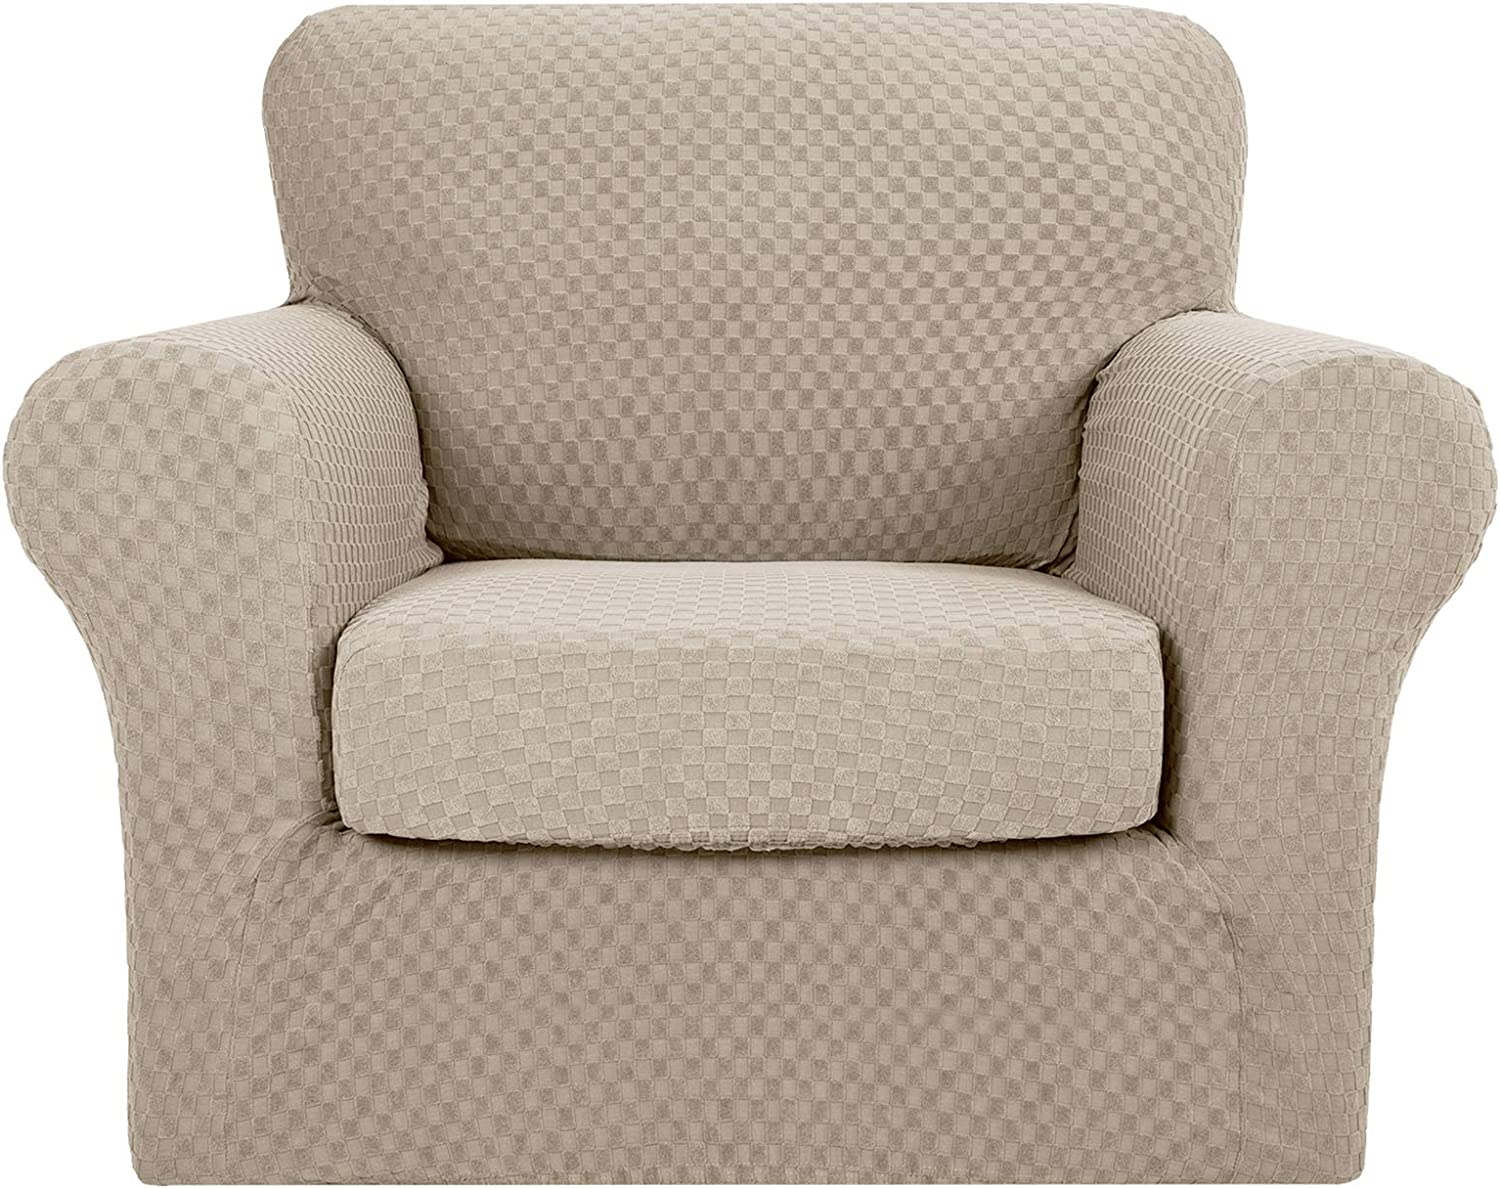 MAXIJIN 3 Piece Newest Jacquard Couch Covers for 2 Cushion Couch Stretch Non Slip Love Seat Couch Cover for Dogs Pet Friendly Elastic Furniture Protector Loveseat Slipcovers Loveseat, Light Beige